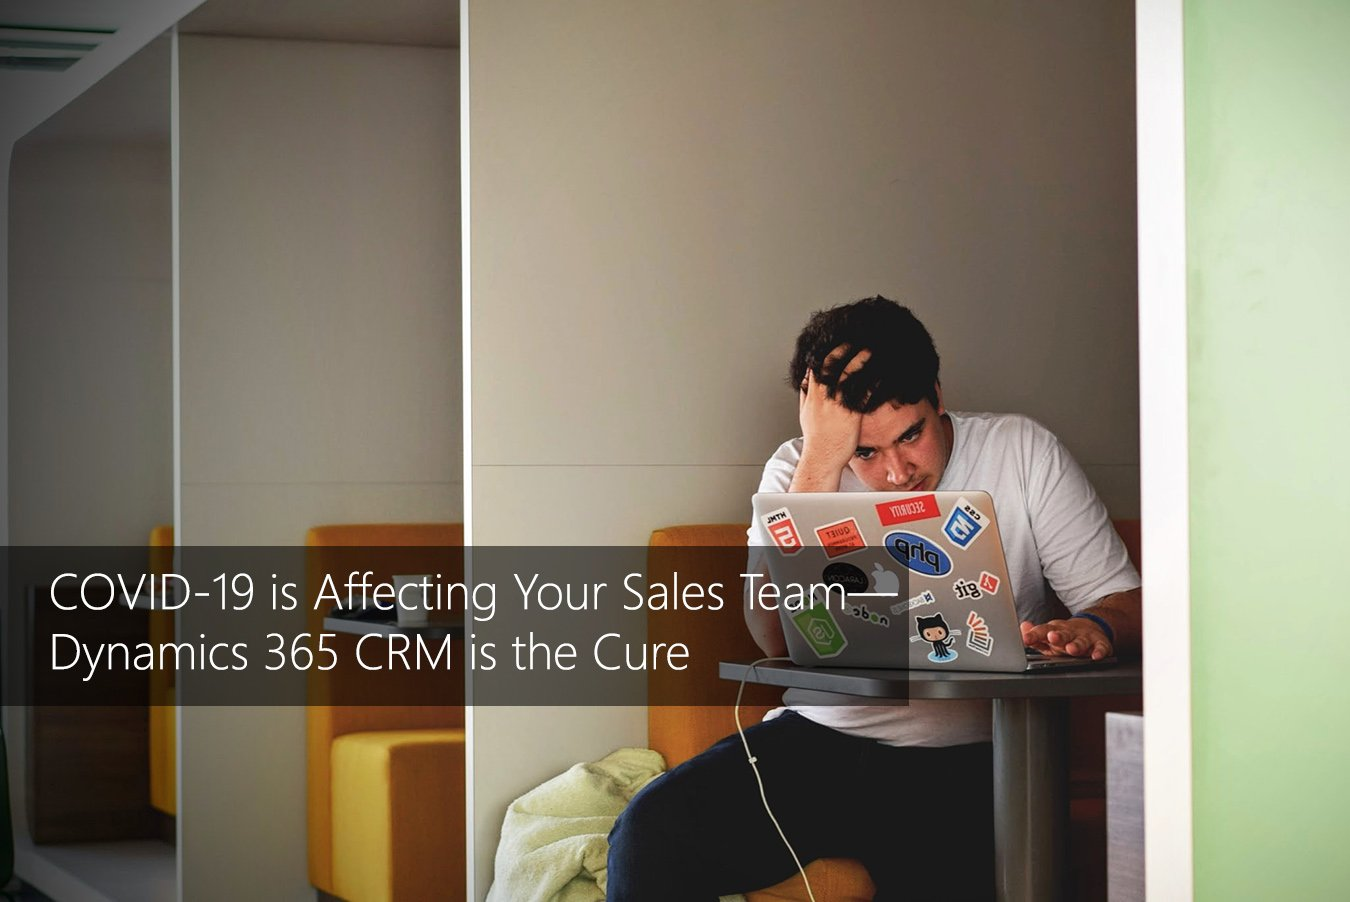 tmc-blog-covid-19-is-affecting-your-sales-team-dynamics-365-crm-is-the-cure 1